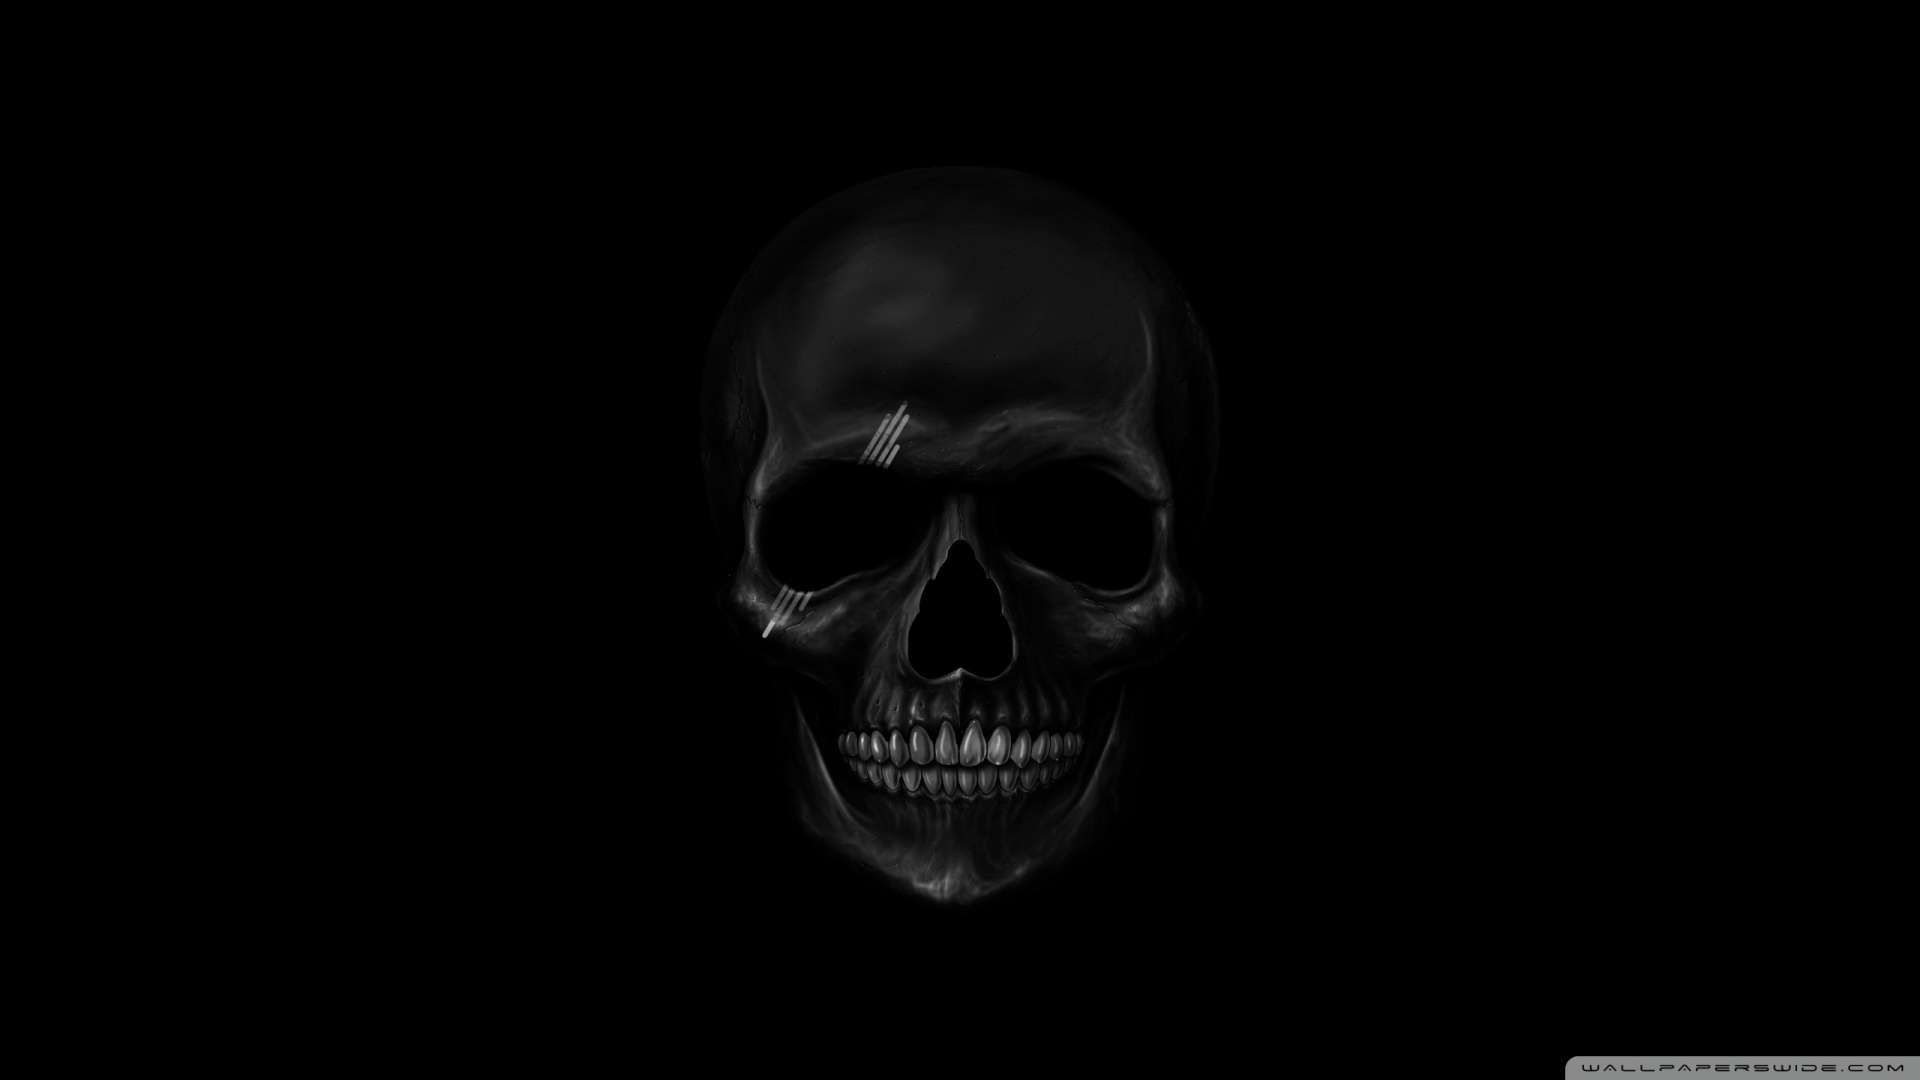 39 Awesome Black Wallpaper Hd 1080p Images Black Hd Wallpaper Black Skulls Wallpaper Hd Skull Wallpapers